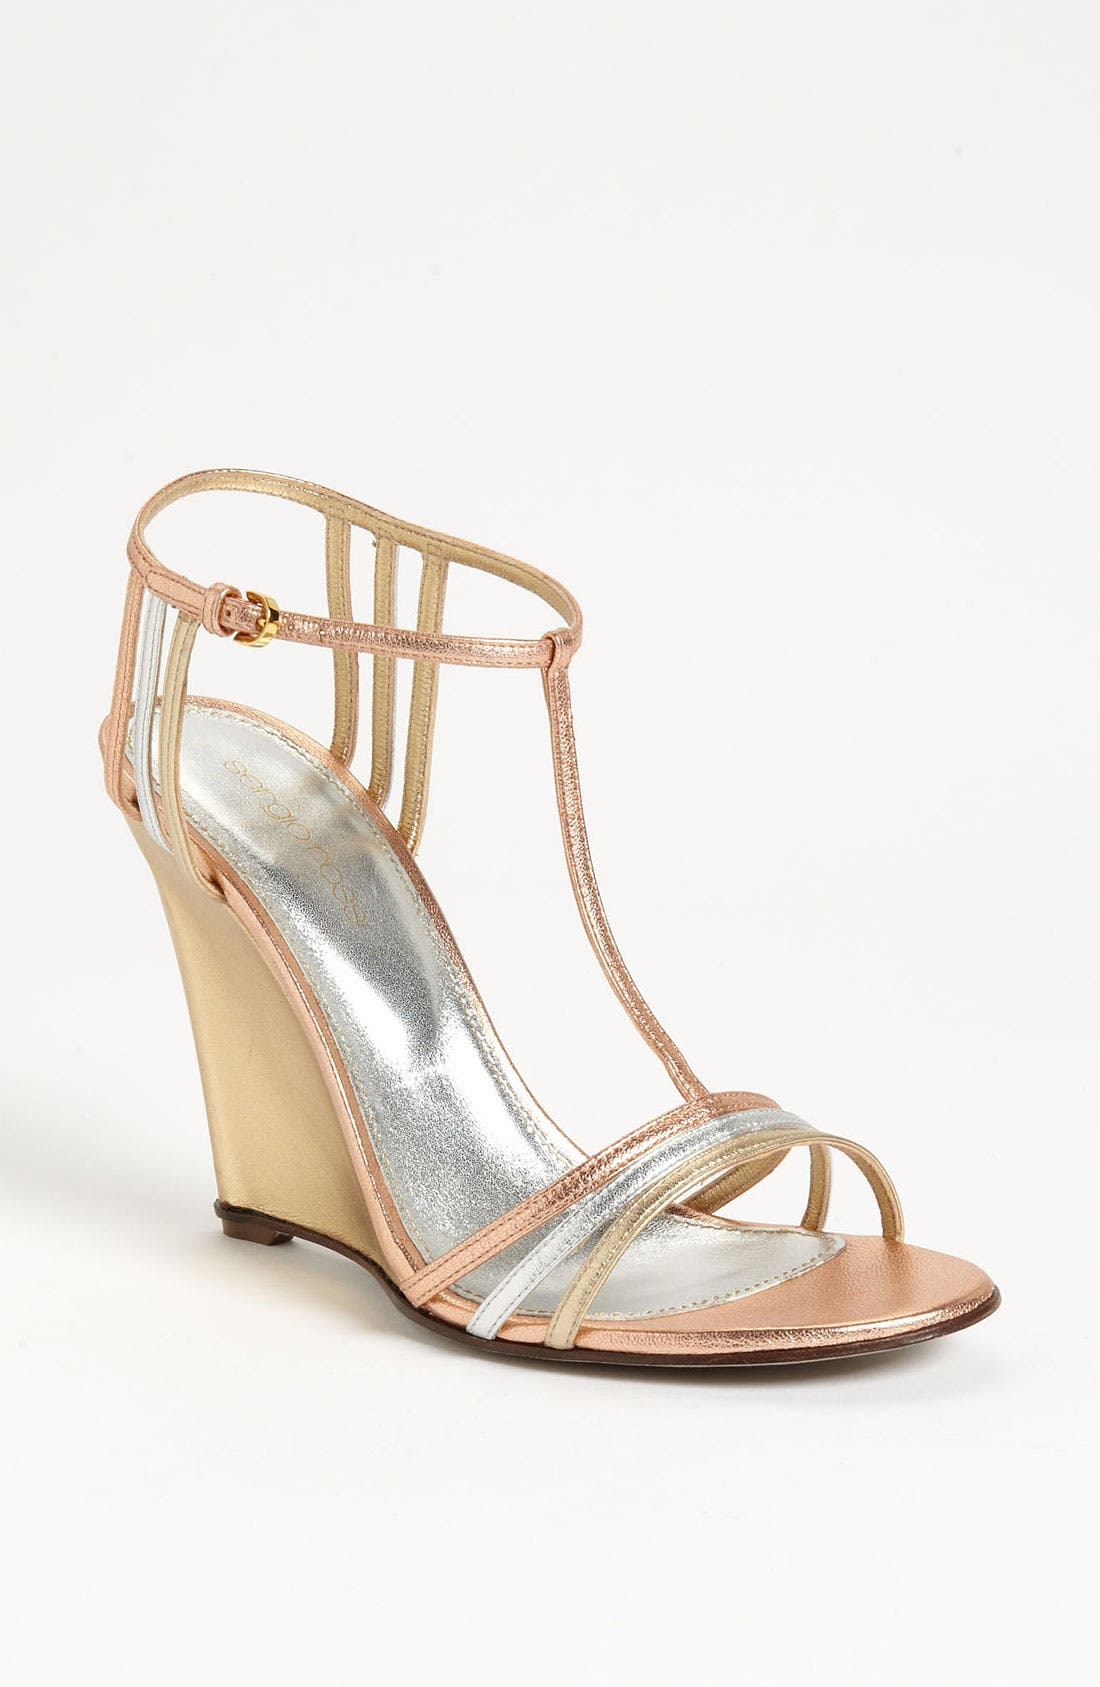 Alternate Image 1 Selected - Sergio Rossi 'Mirage' Wedge Sandal